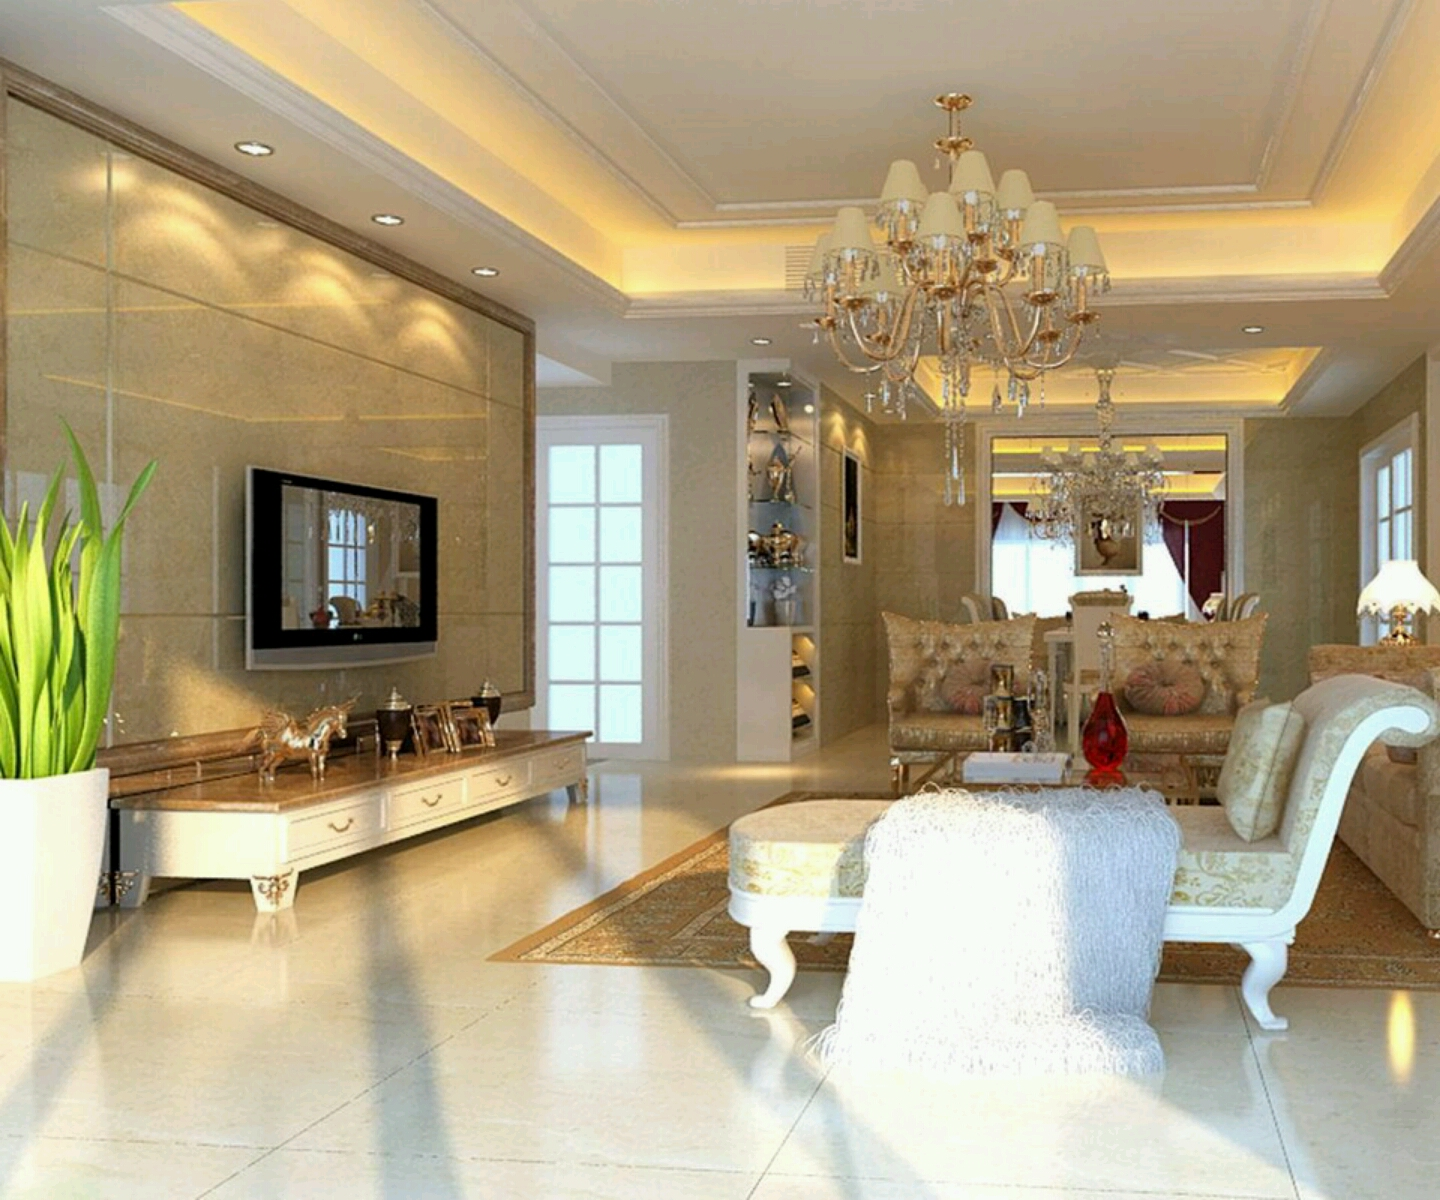 Interior Design Ideas: Luxury Home Interior